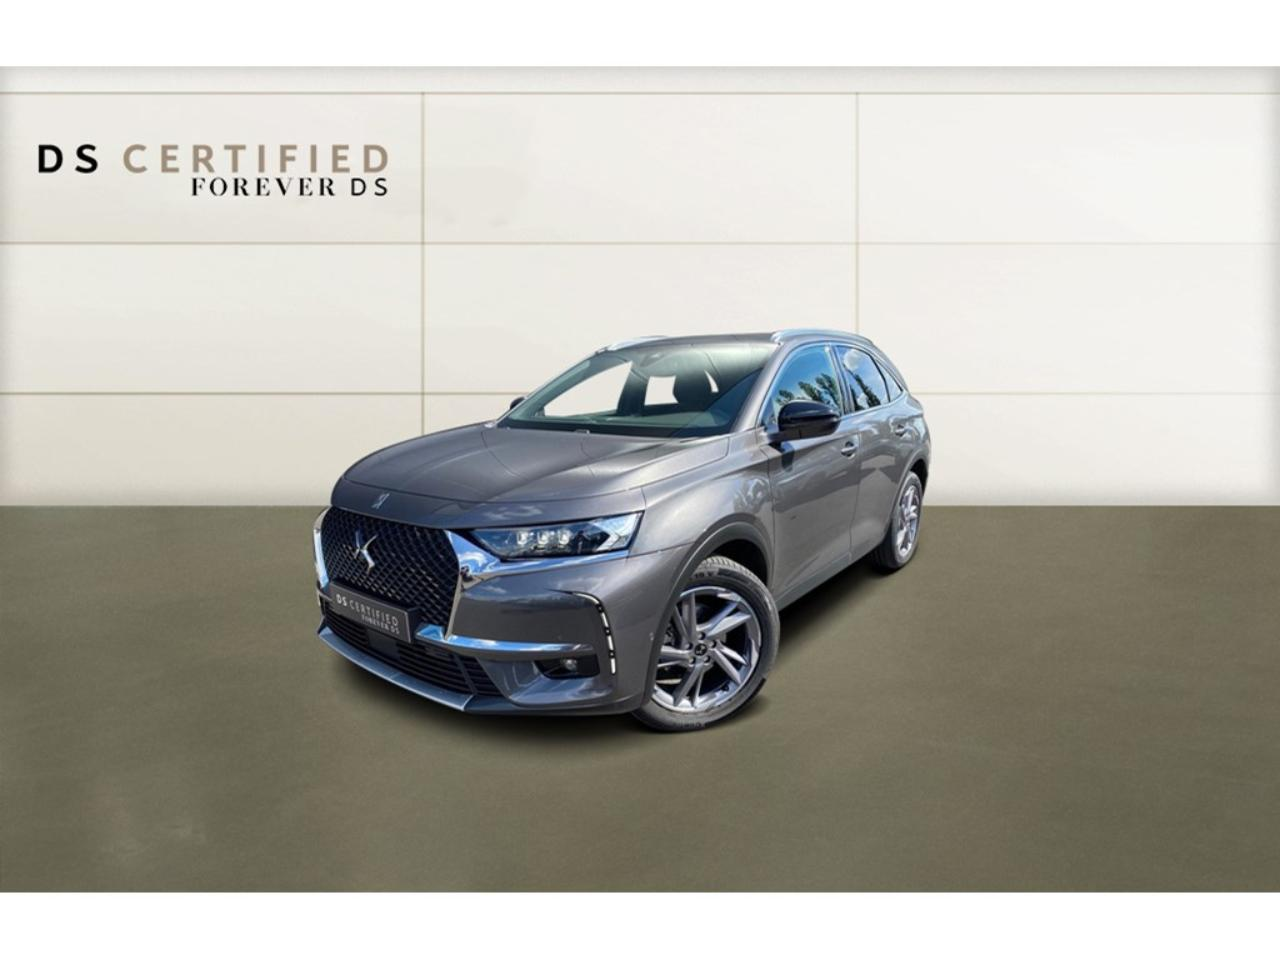 Ds DS 7 Crossback PureTech 180 Automatic So Chic